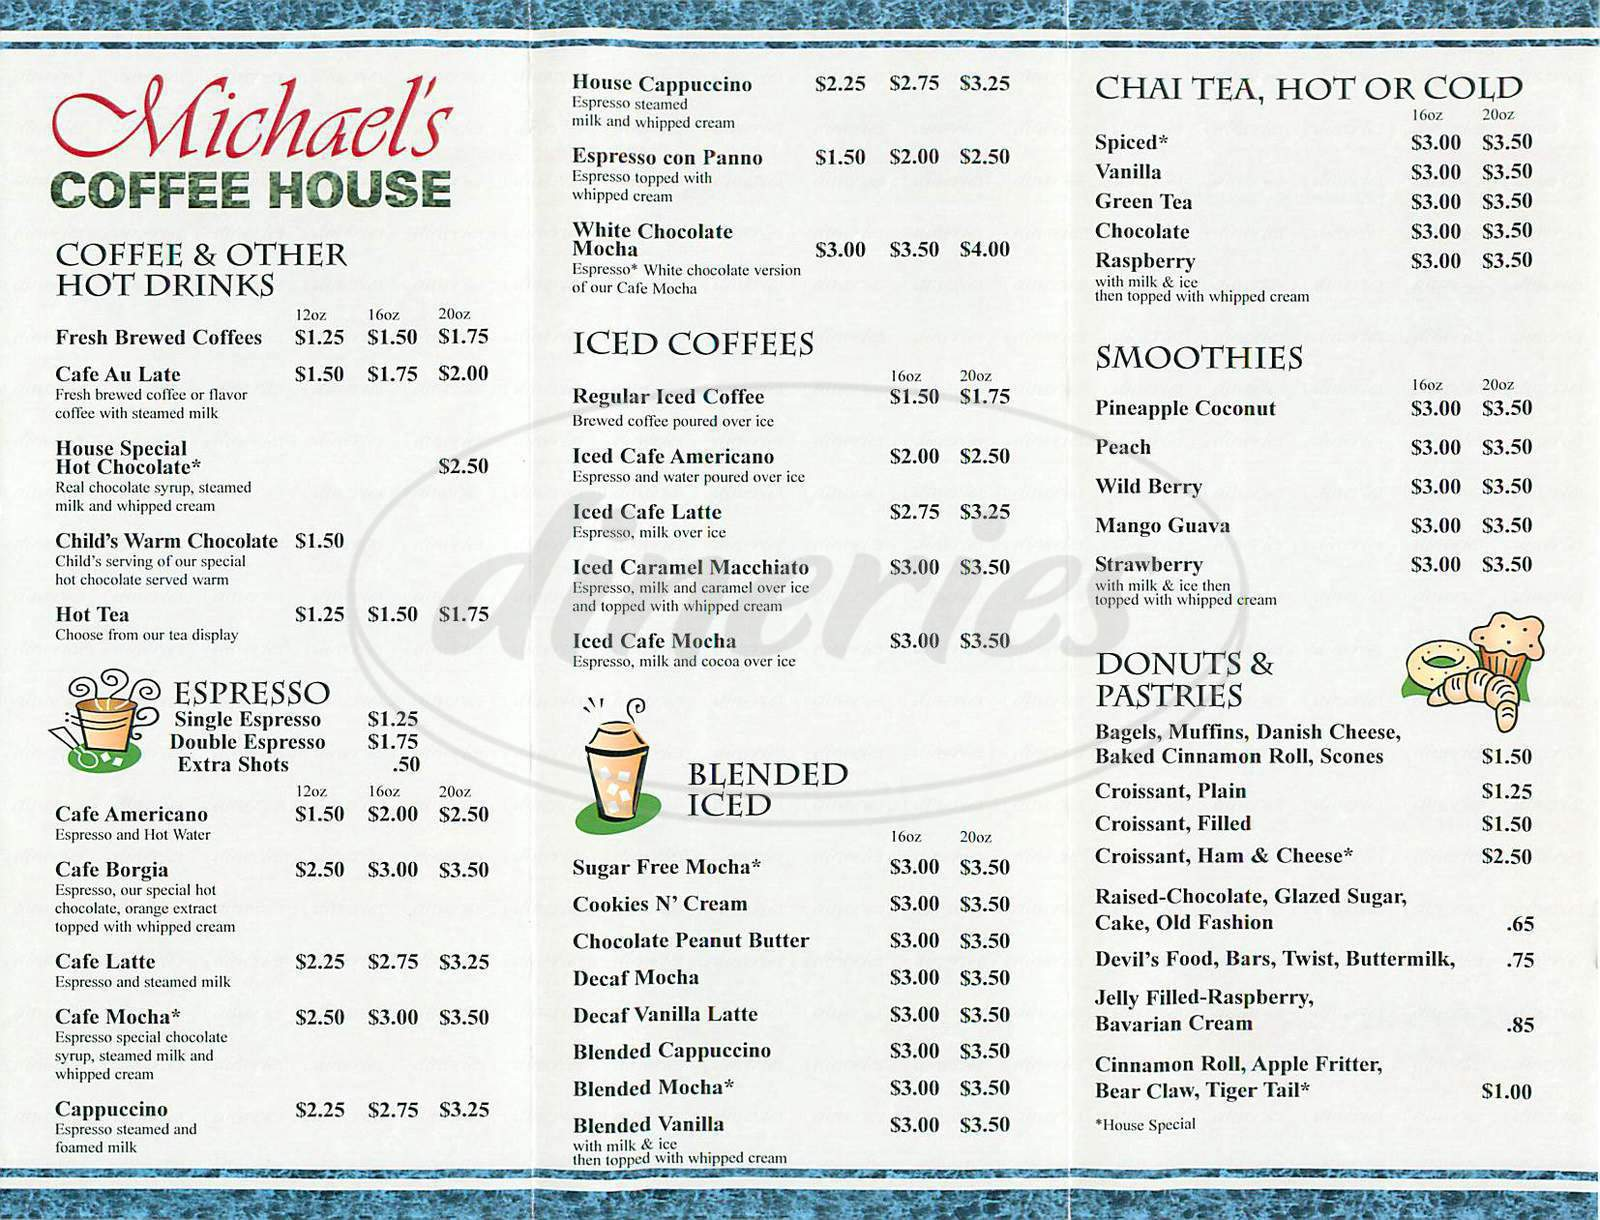 menu for Michael's Coffee House